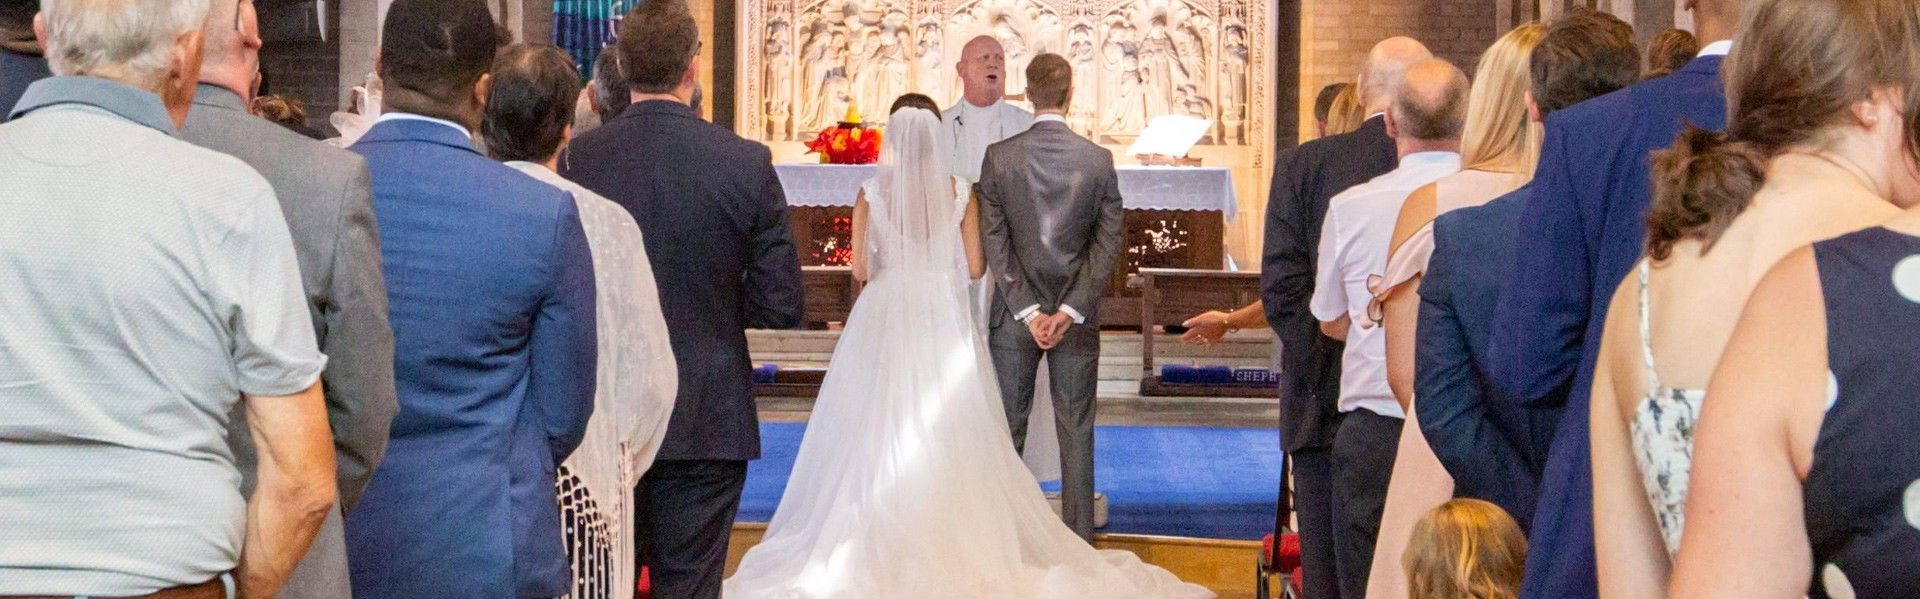 A wedding at Church of the Good Shepherd